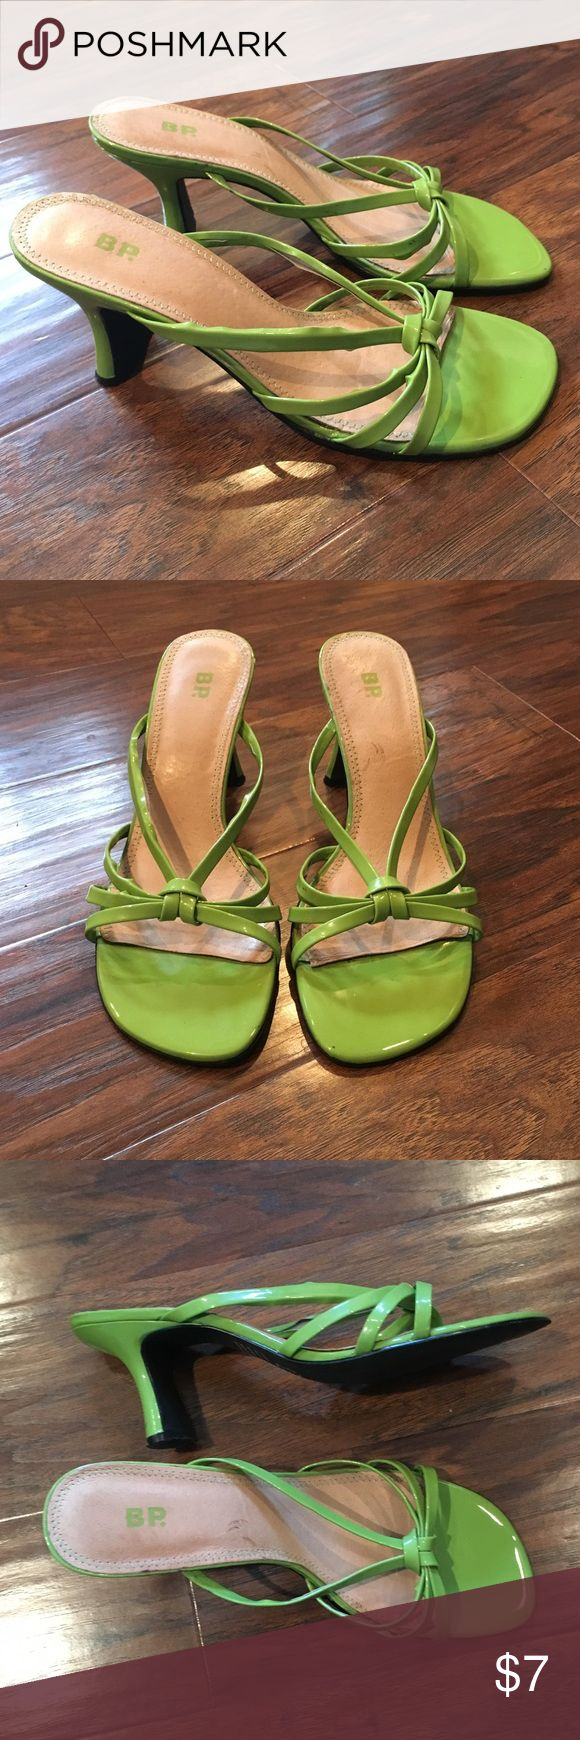 BP green heels Patent leather, pretty lime green strappy high heels.  The leather is coming apart from the strap on one of the shoes (pictures).  Could be fixed with shoe glue if you're handy.  Cute shoes, just want them gone!  Run small... more like 7.5 bp Shoes Heels